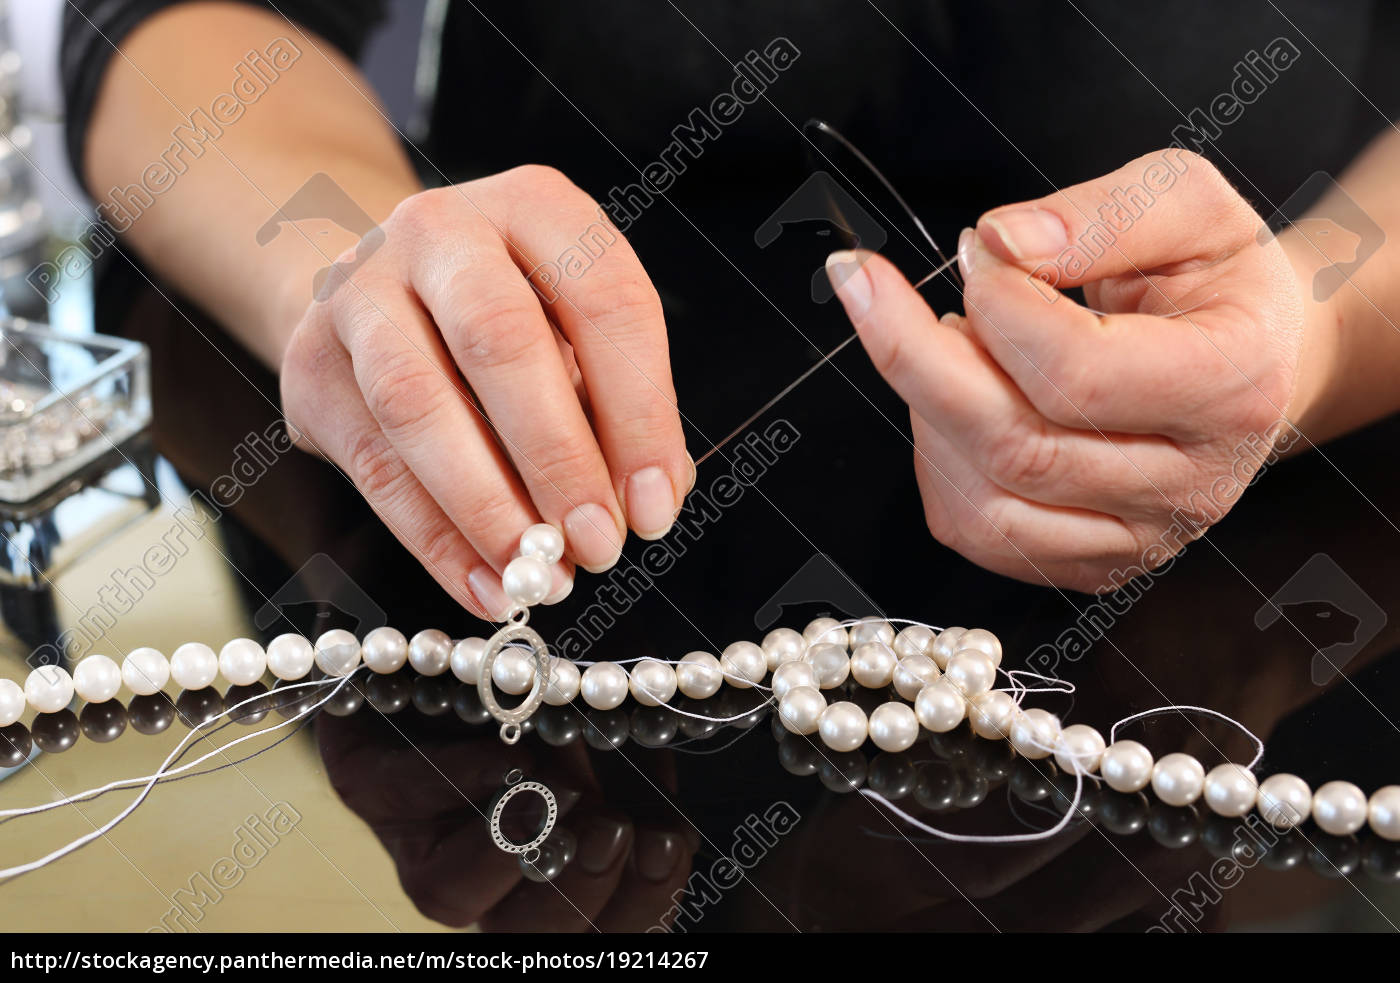 female, threaded, pearl, necklaces - 19214267